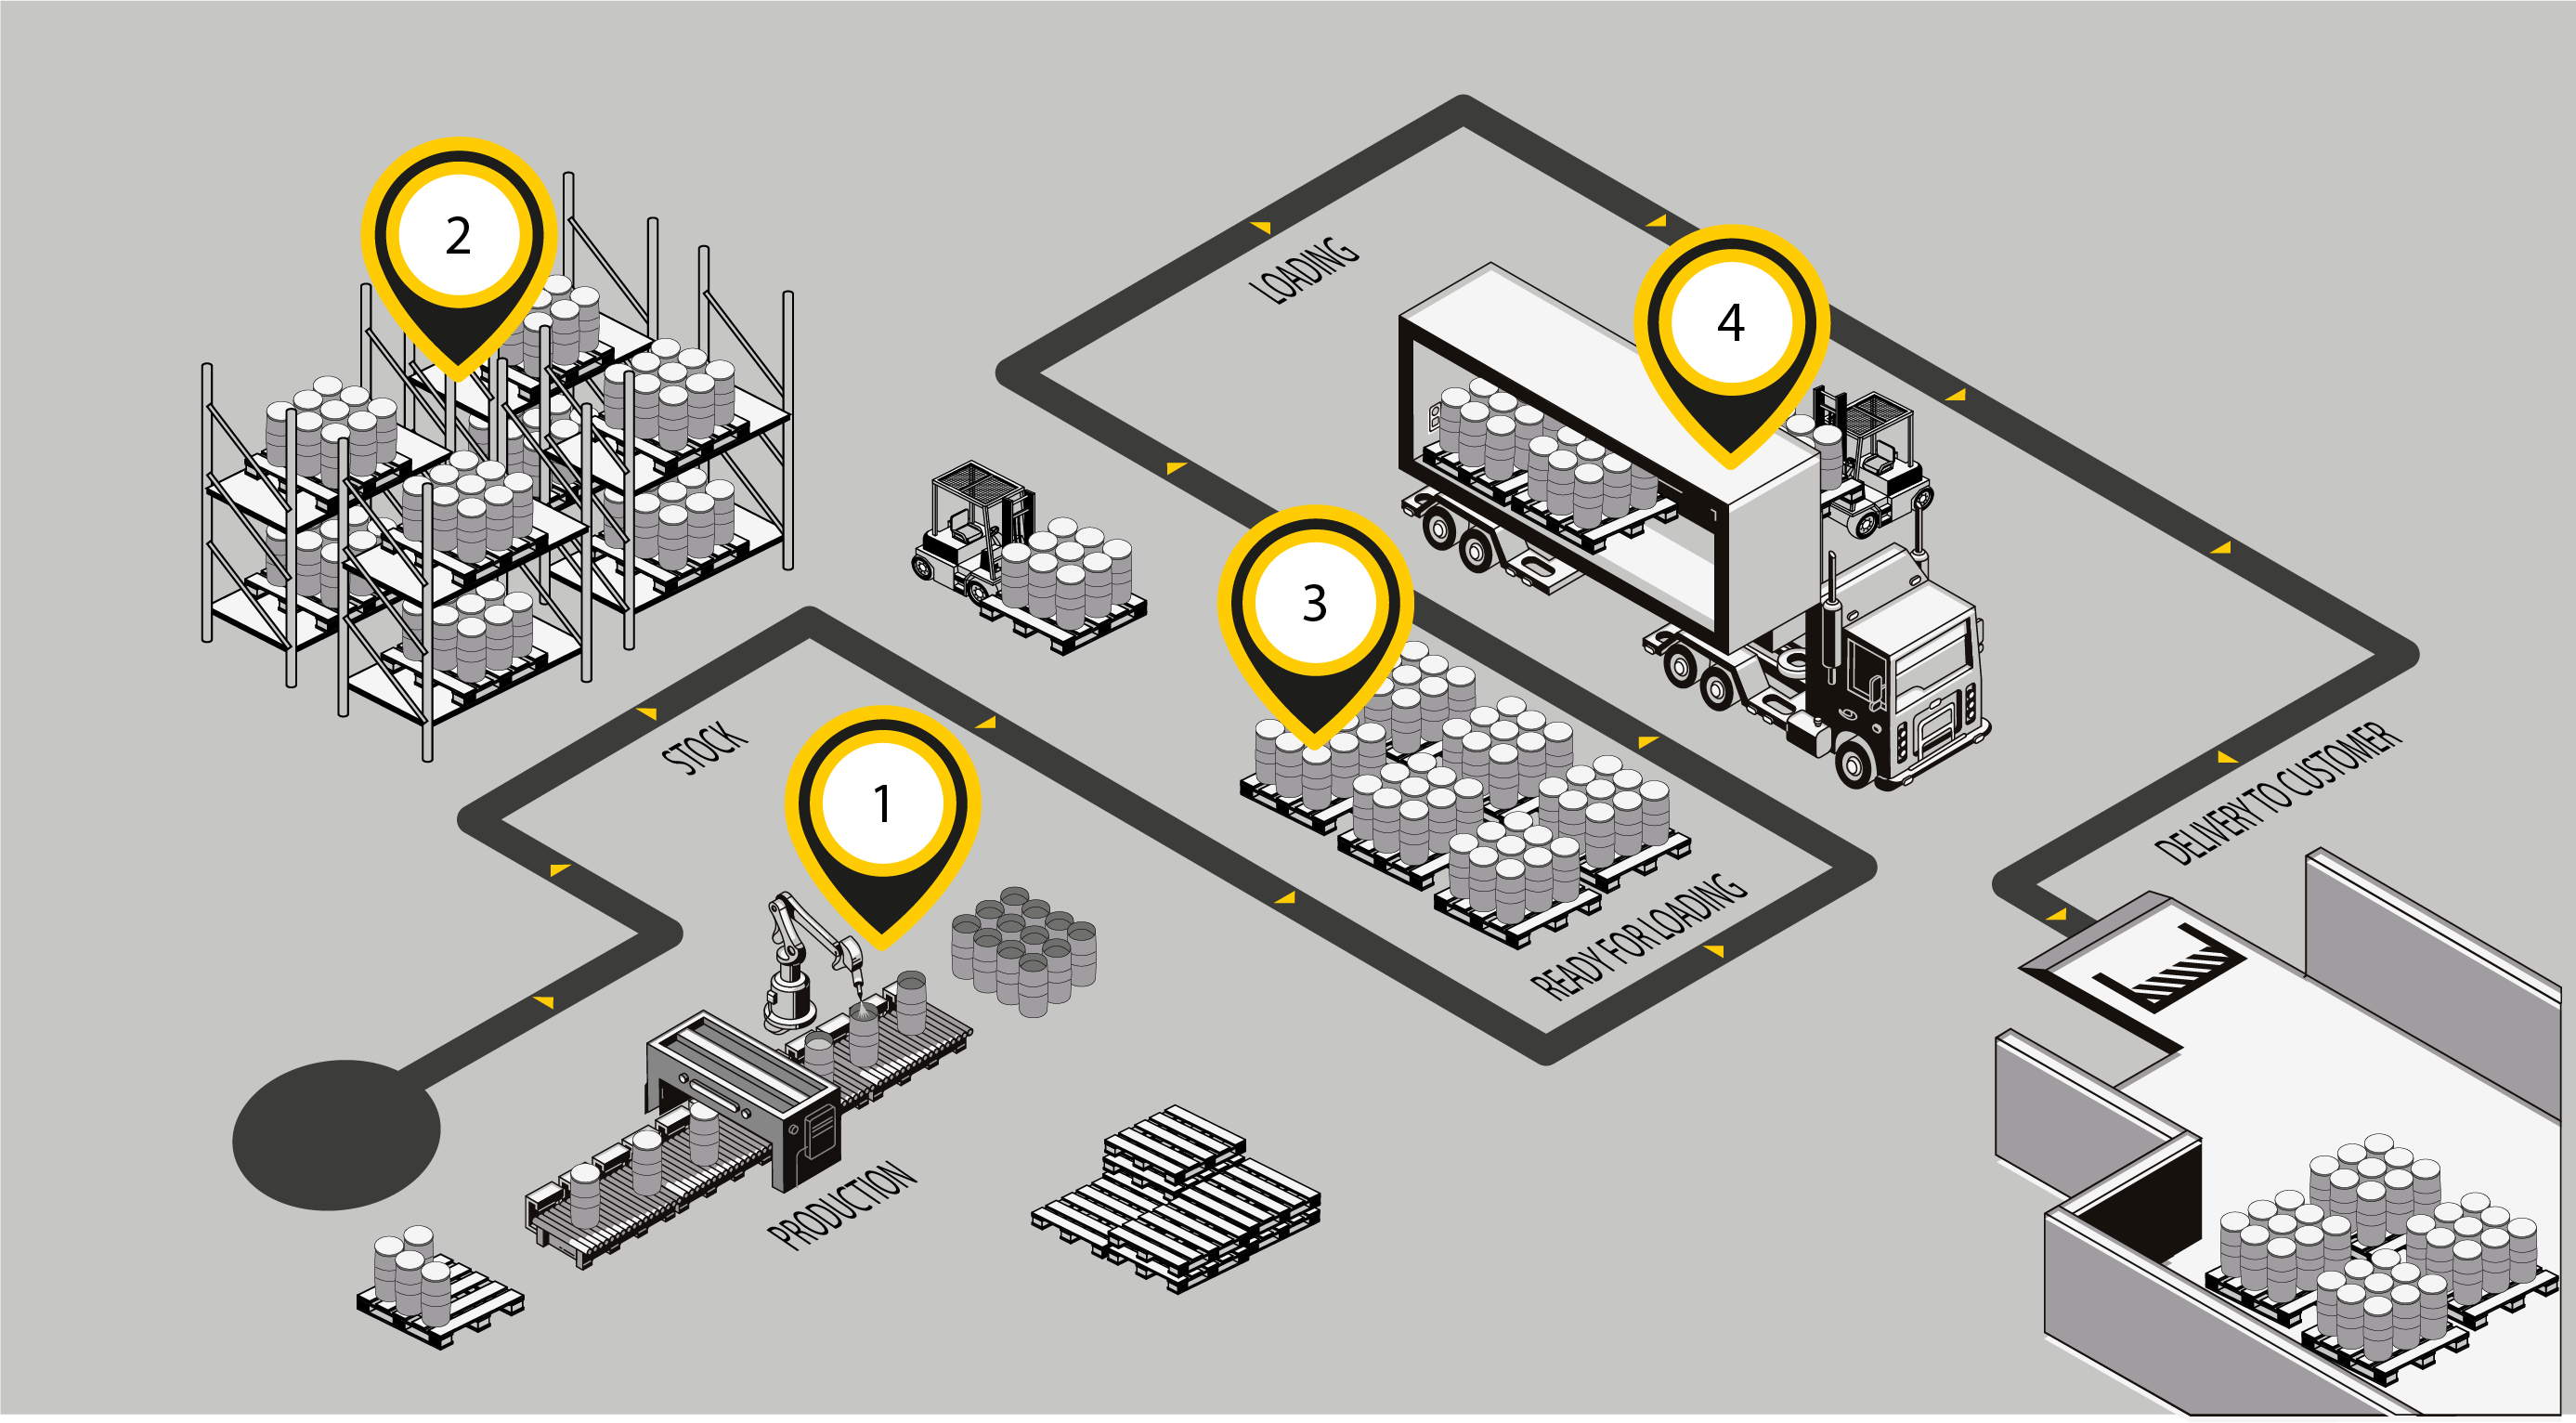 Inventory Tracking in warehouses with the help of RFID